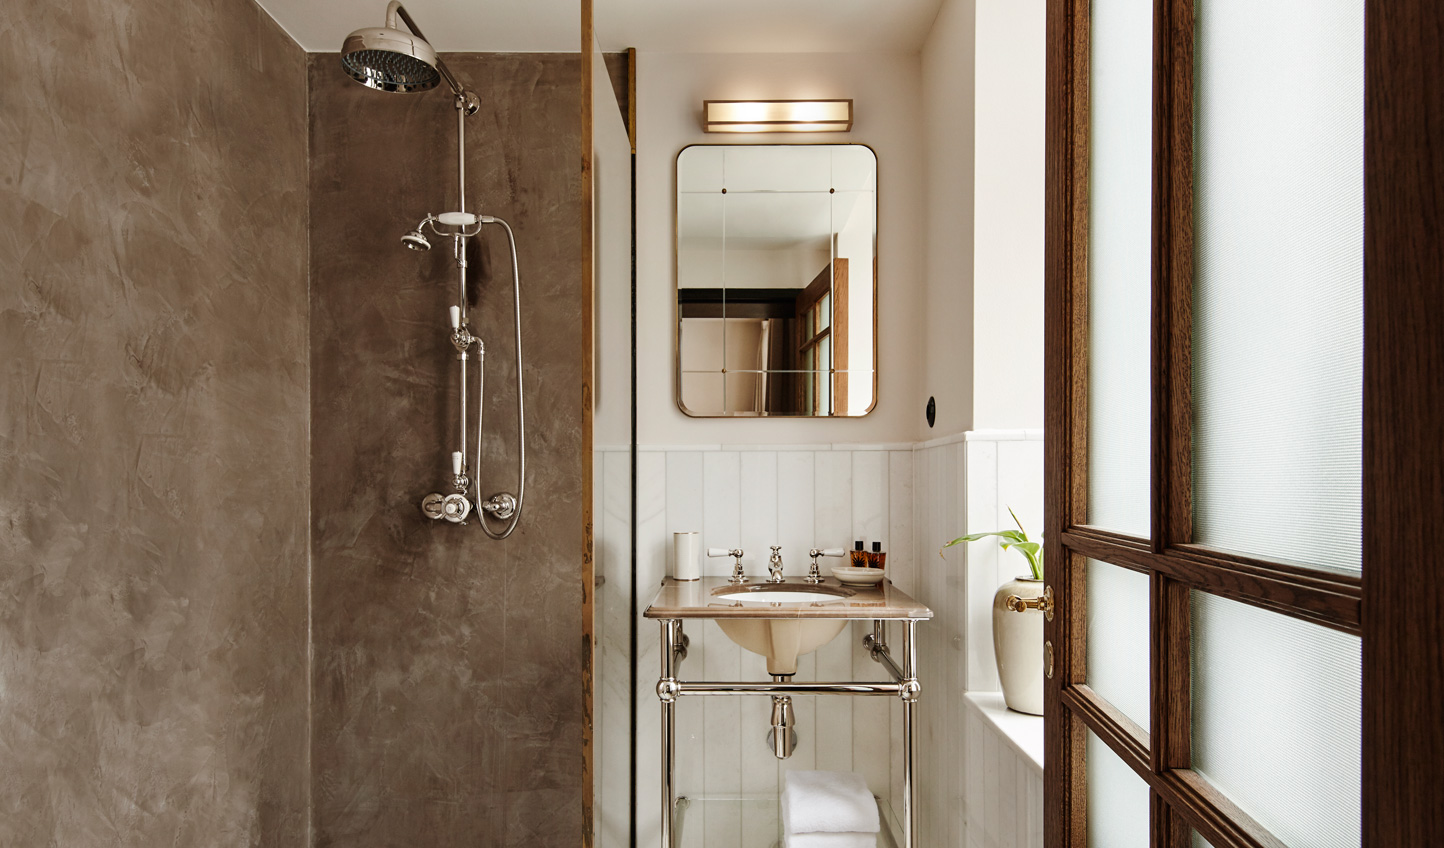 Boutique bathrooms crafted to reflect the design of Hotel Sanders